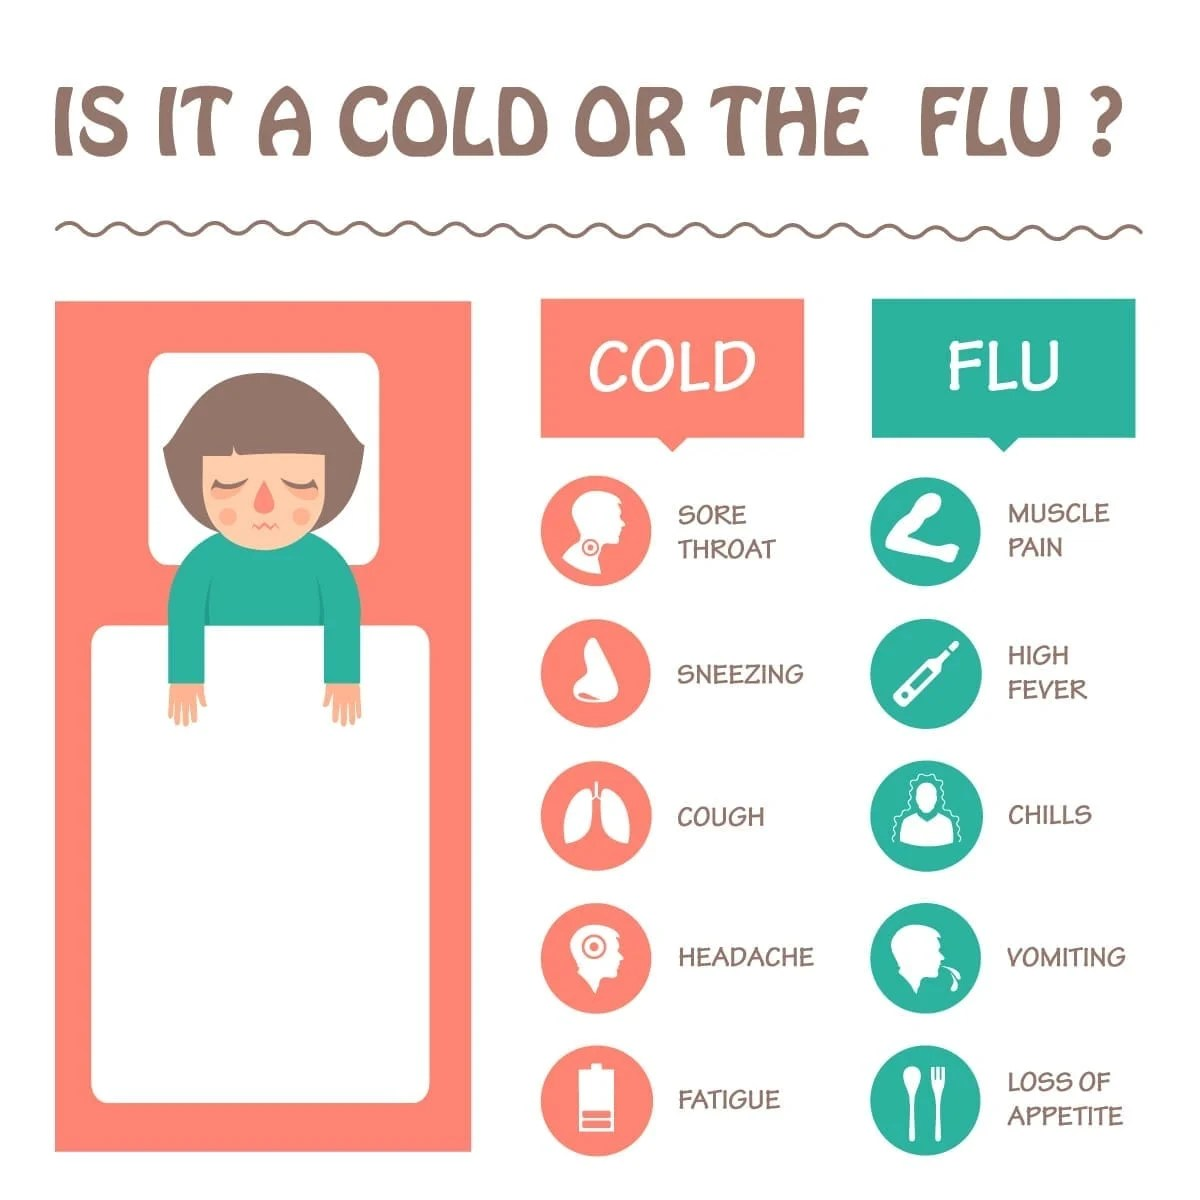 Is It a Cold or the Flu? - familydoctor.org